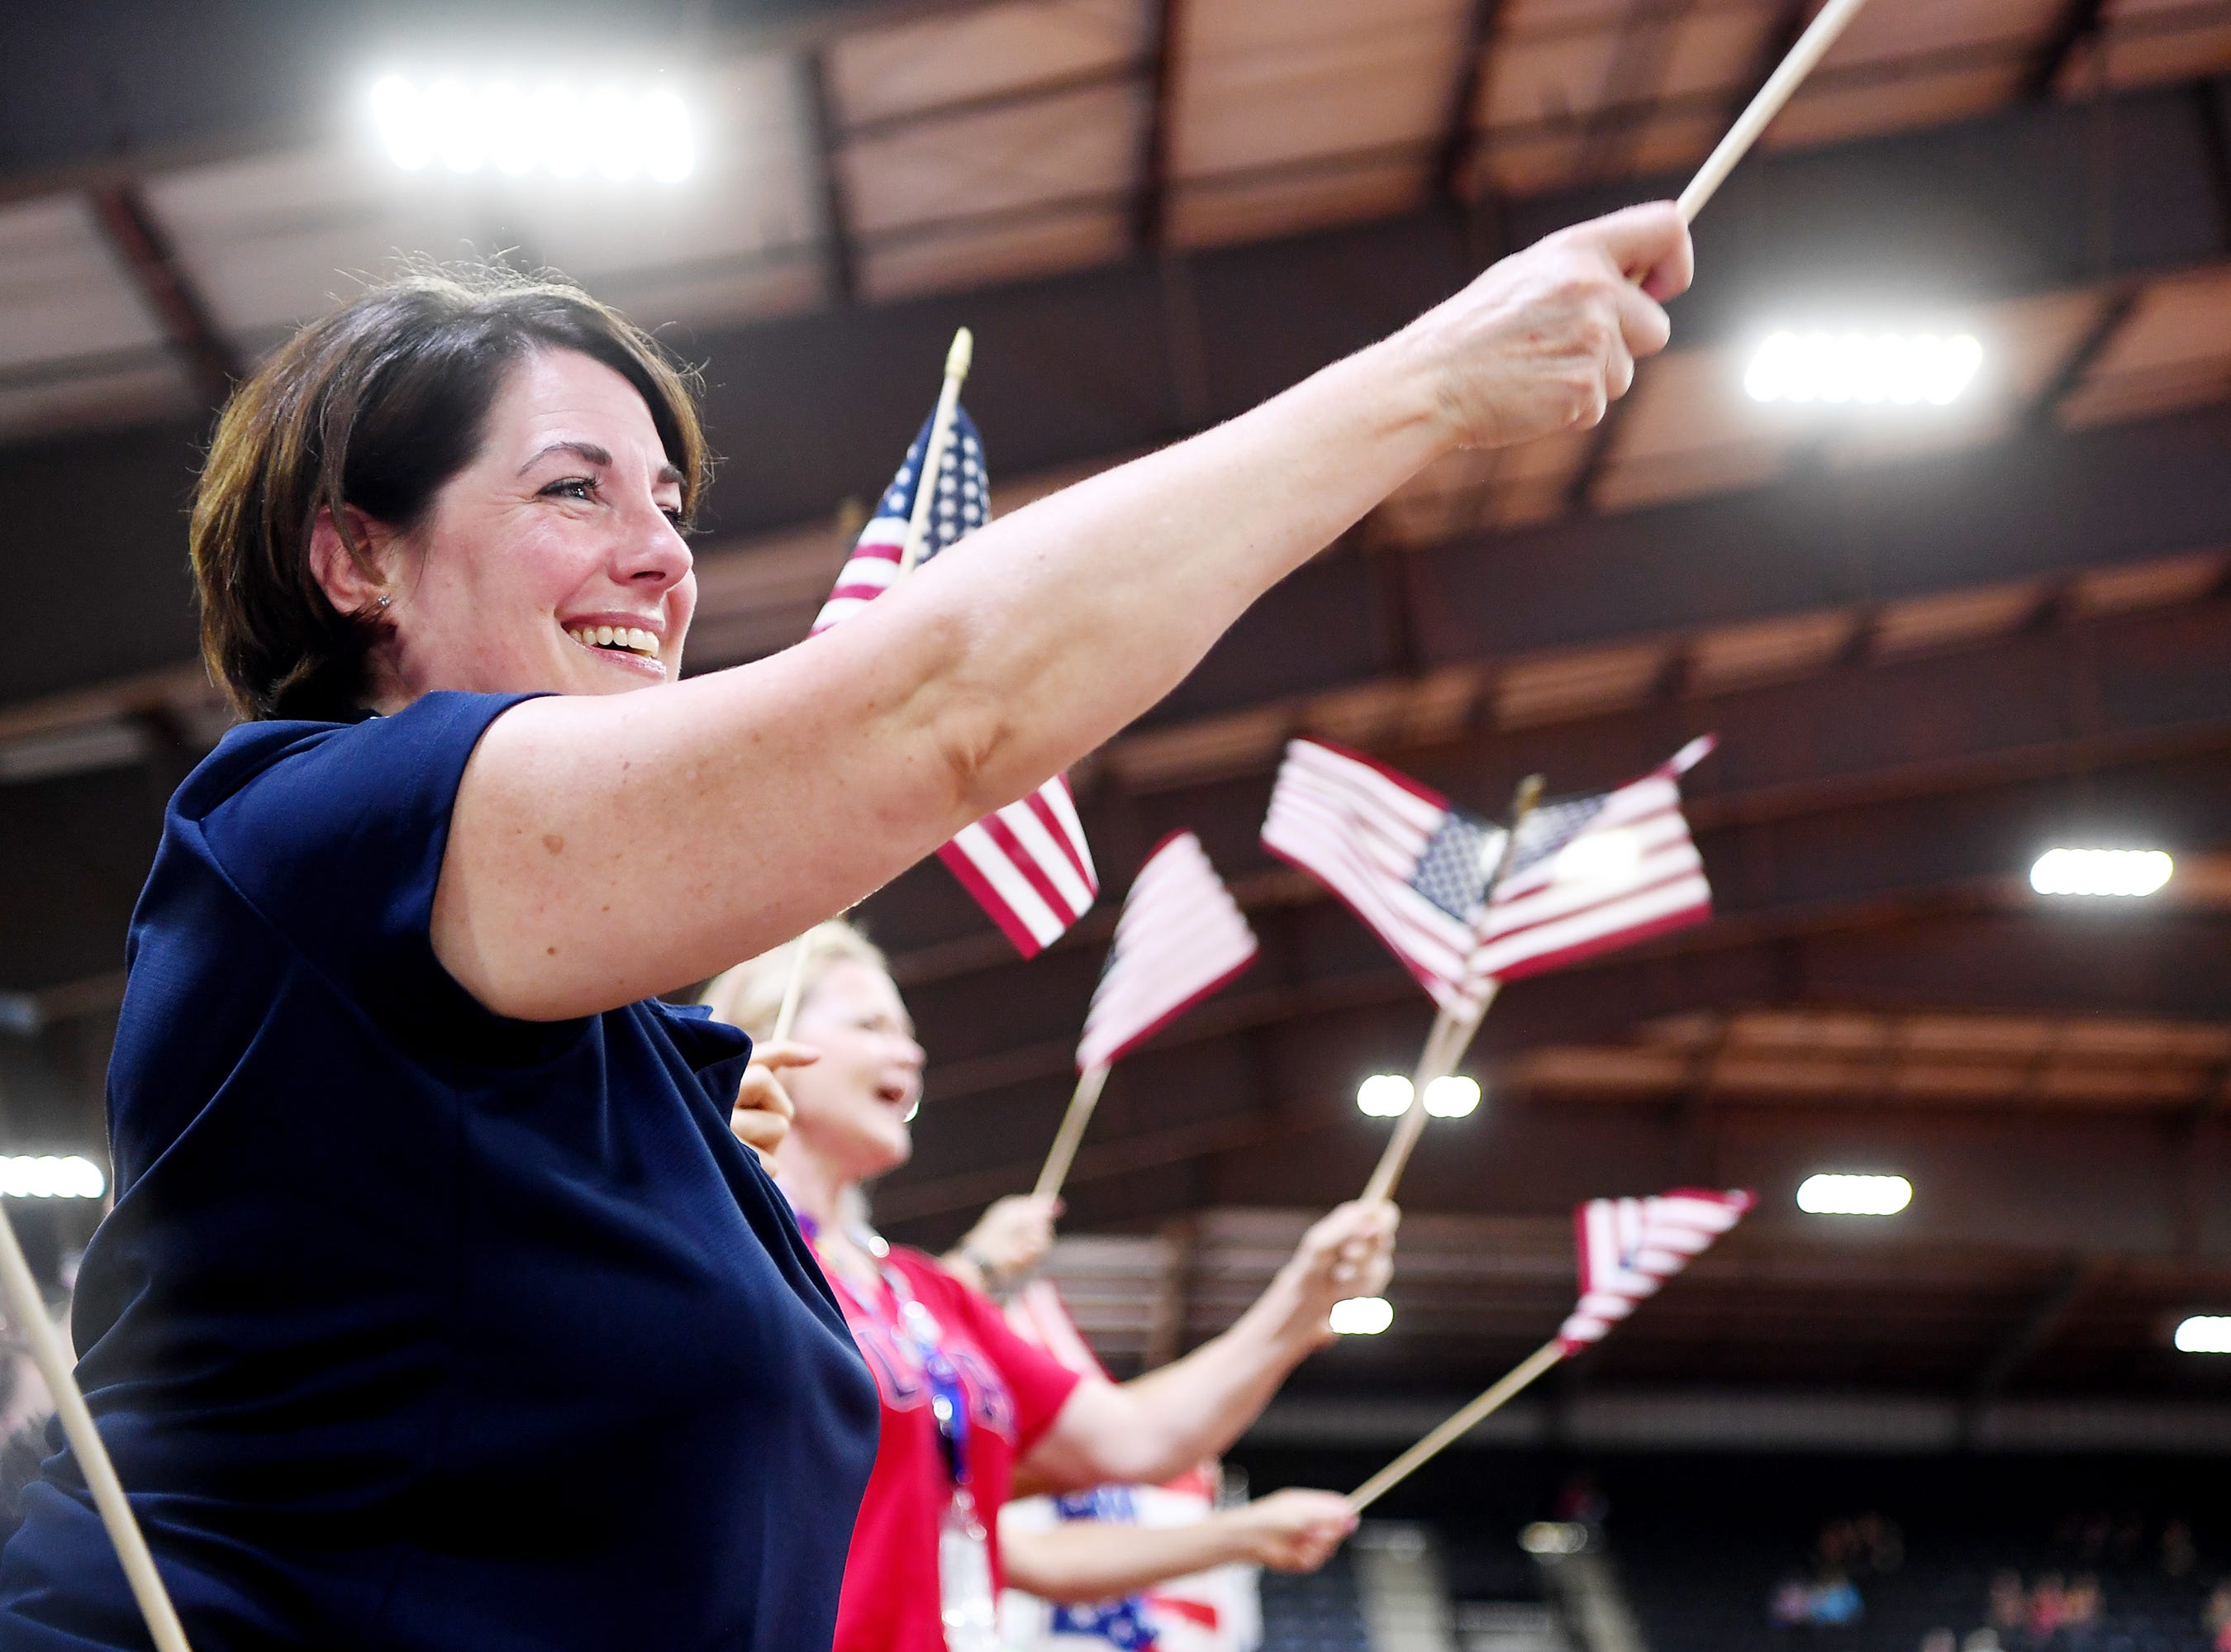 Valerie Janes cheers as her son, Daniel, enters the arena for the vaulting competition at the World Equestrian Games Sept. 19, 2018.